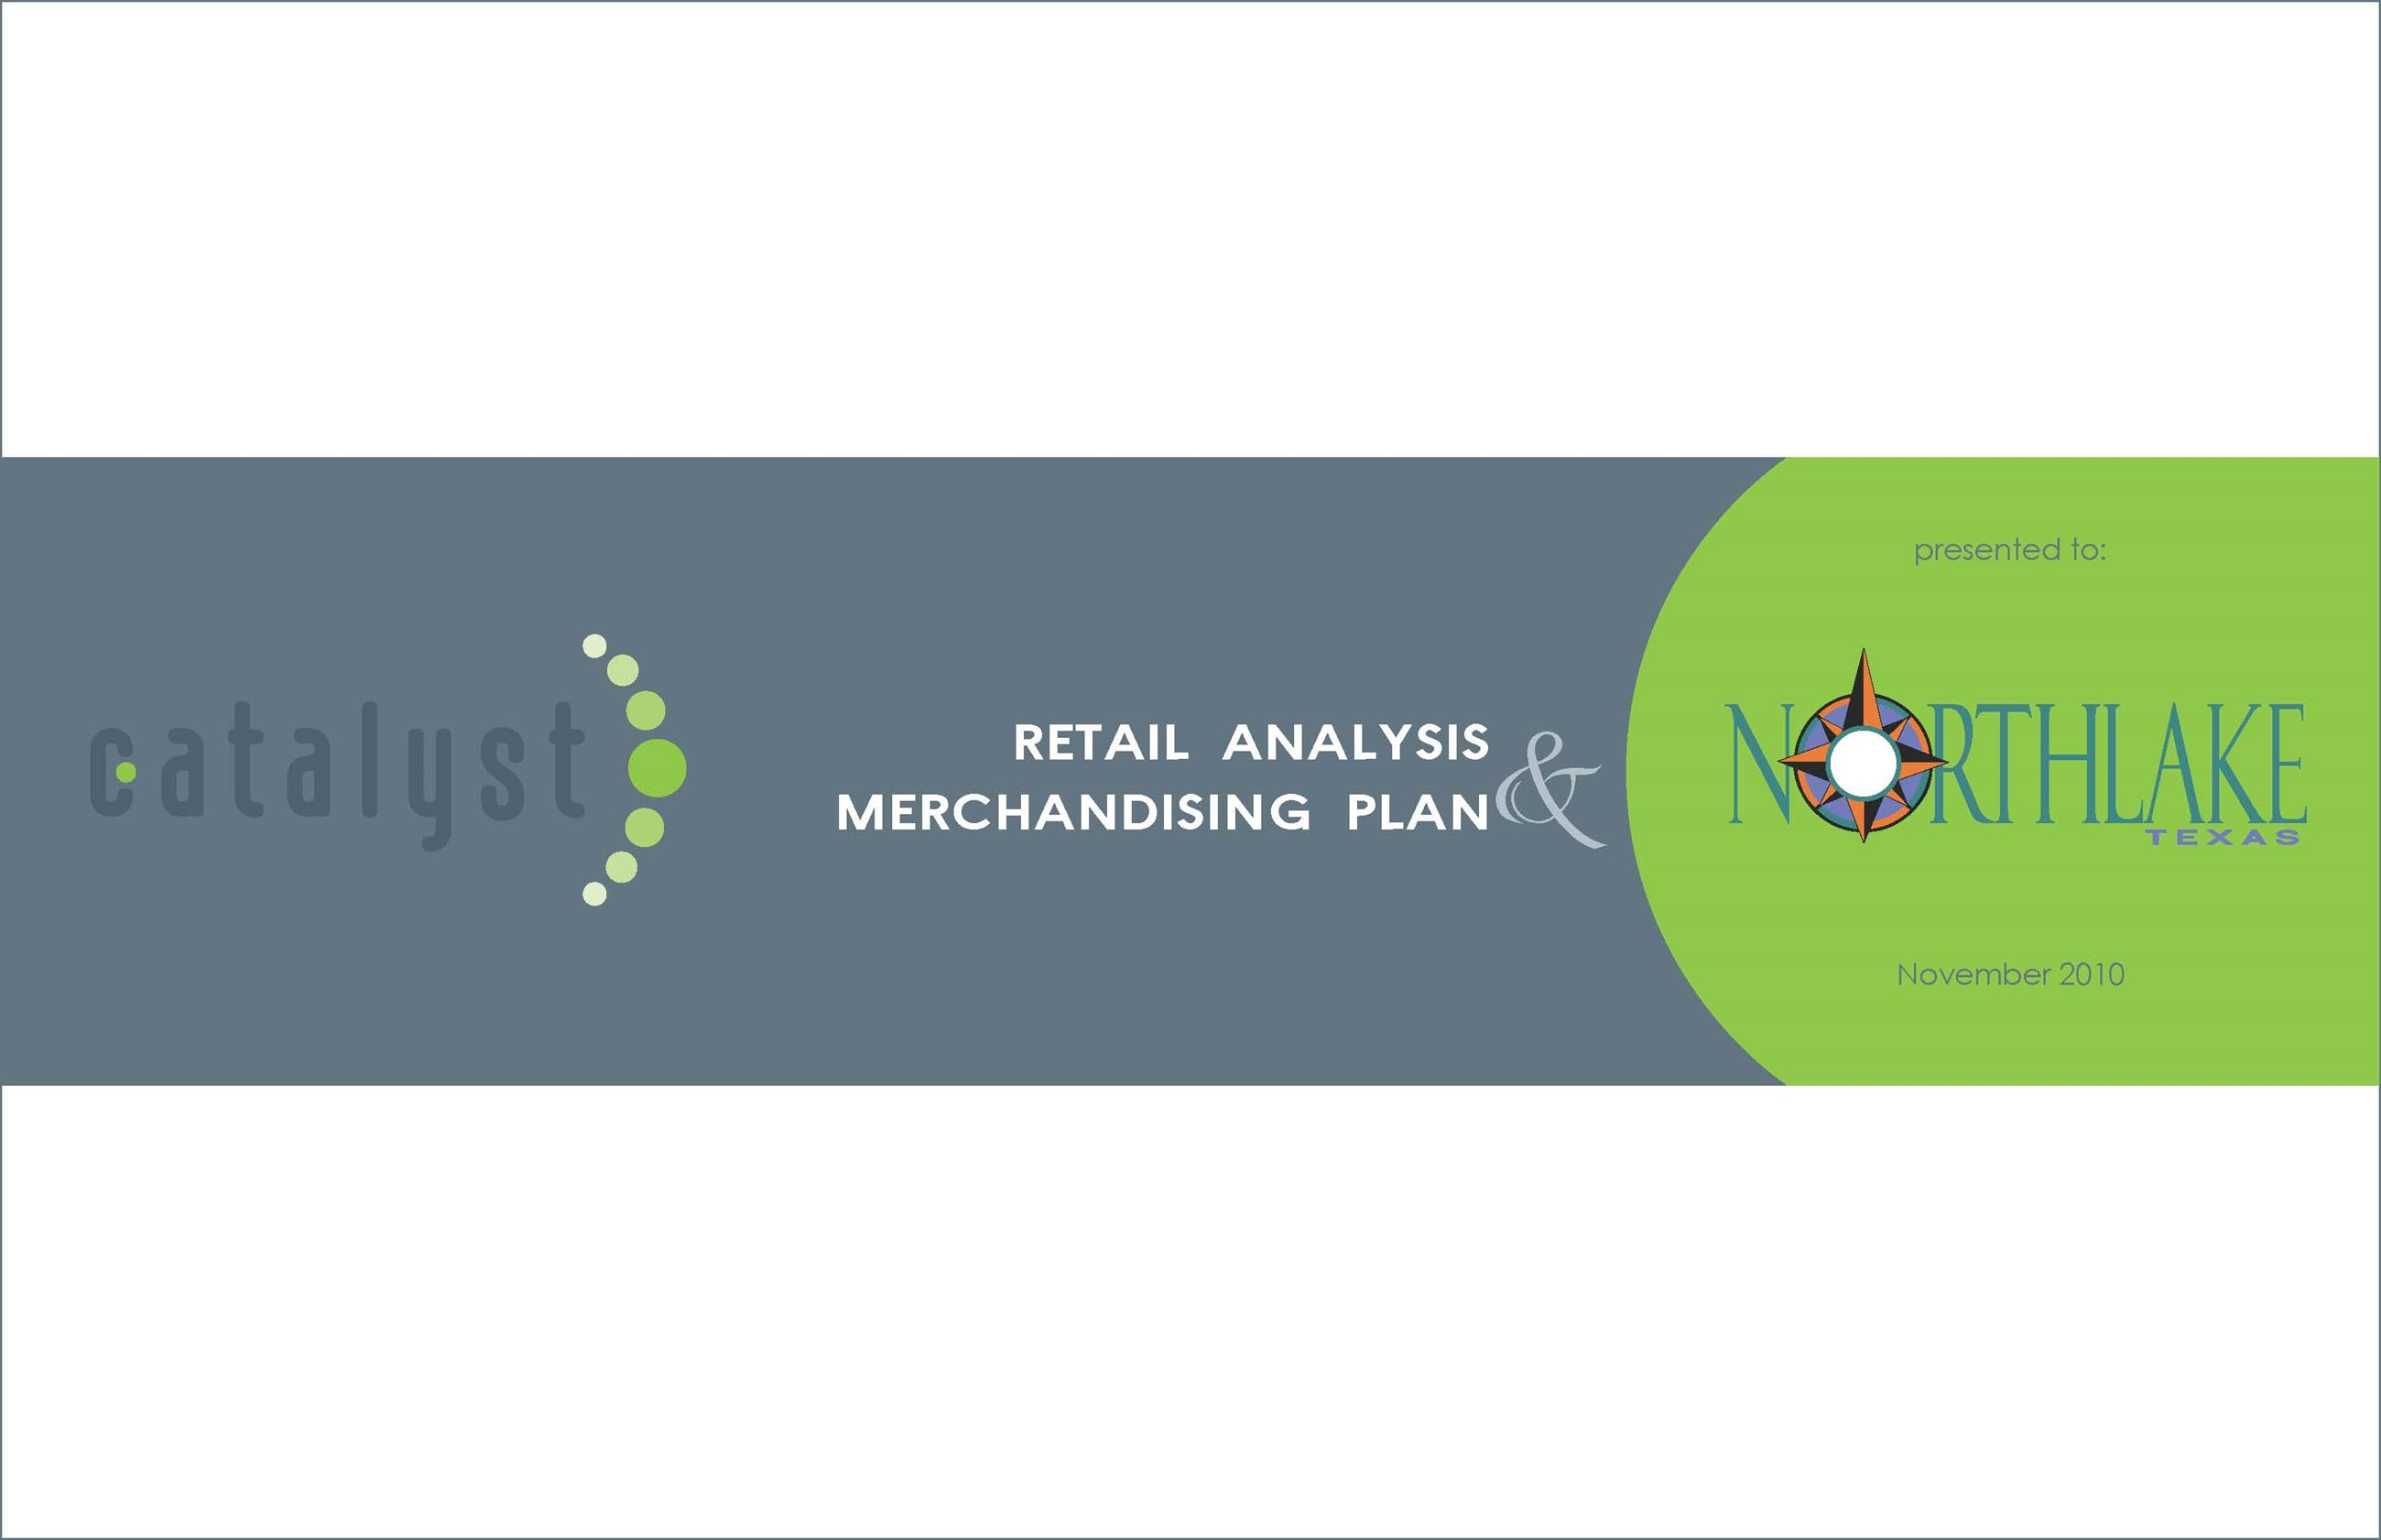 Retail Analysis and Merchandising Plan